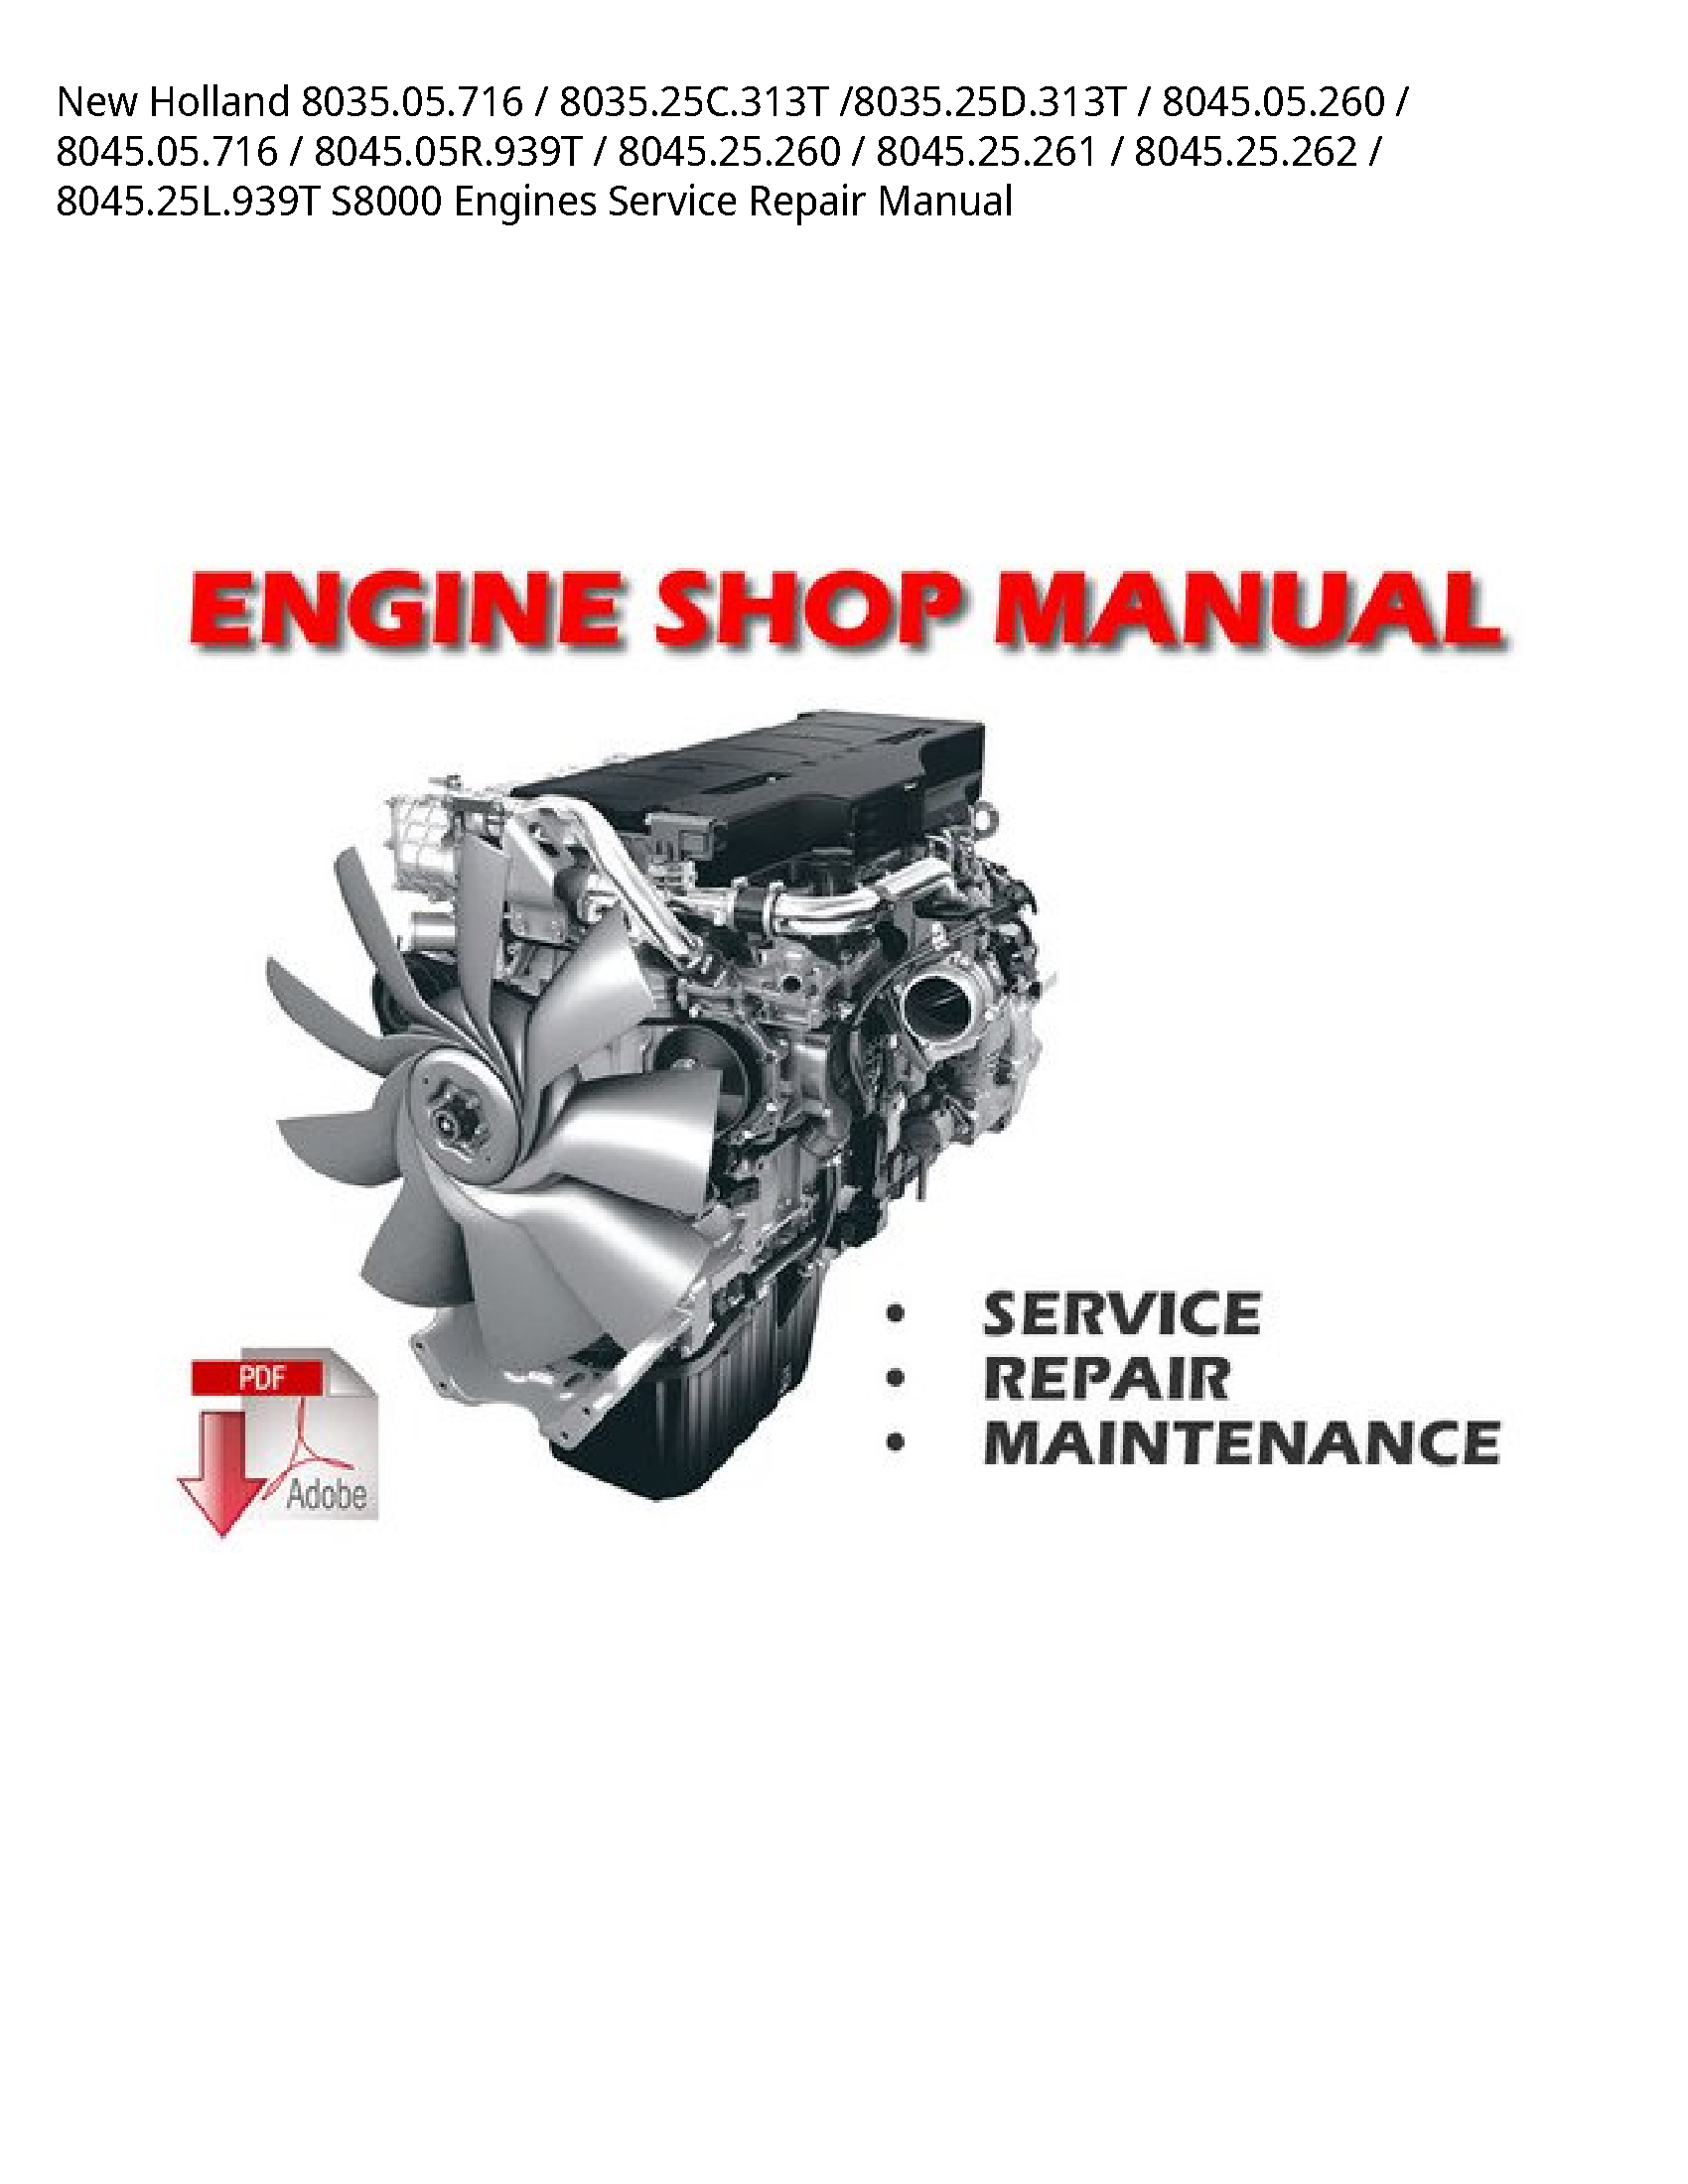 New Holland 8035.05.716 Engines manual